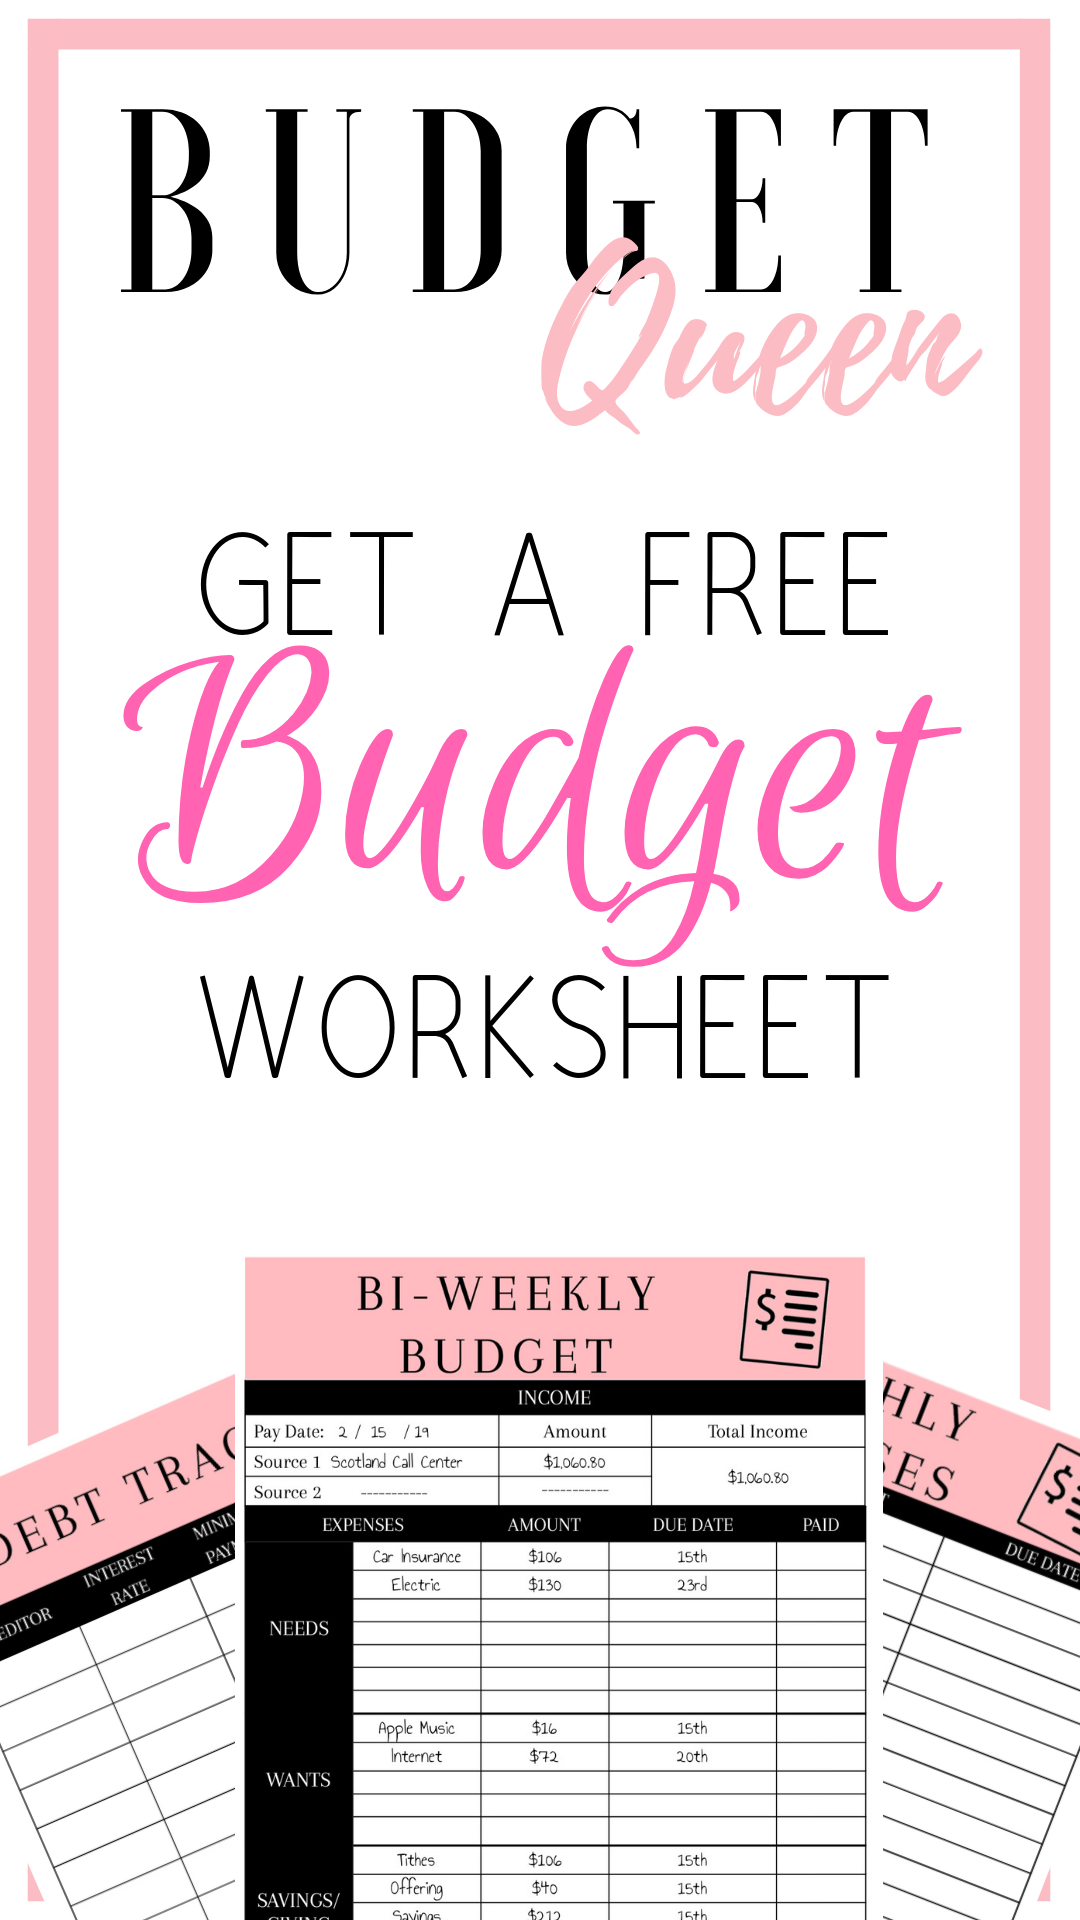 Budgeting Is Hard But It Can Be Easy When You Have A